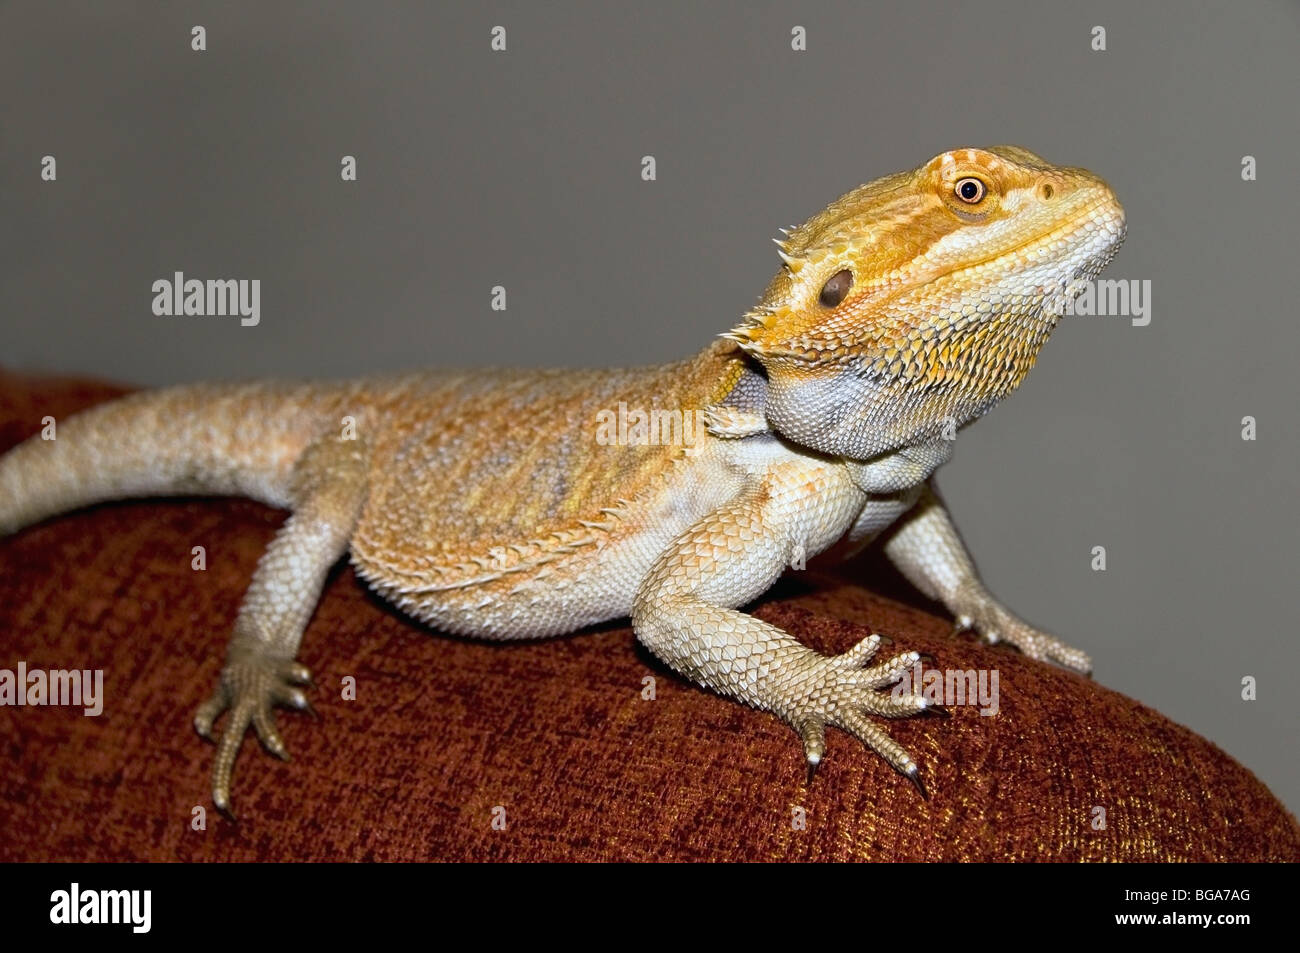 Lizard - Stock Image